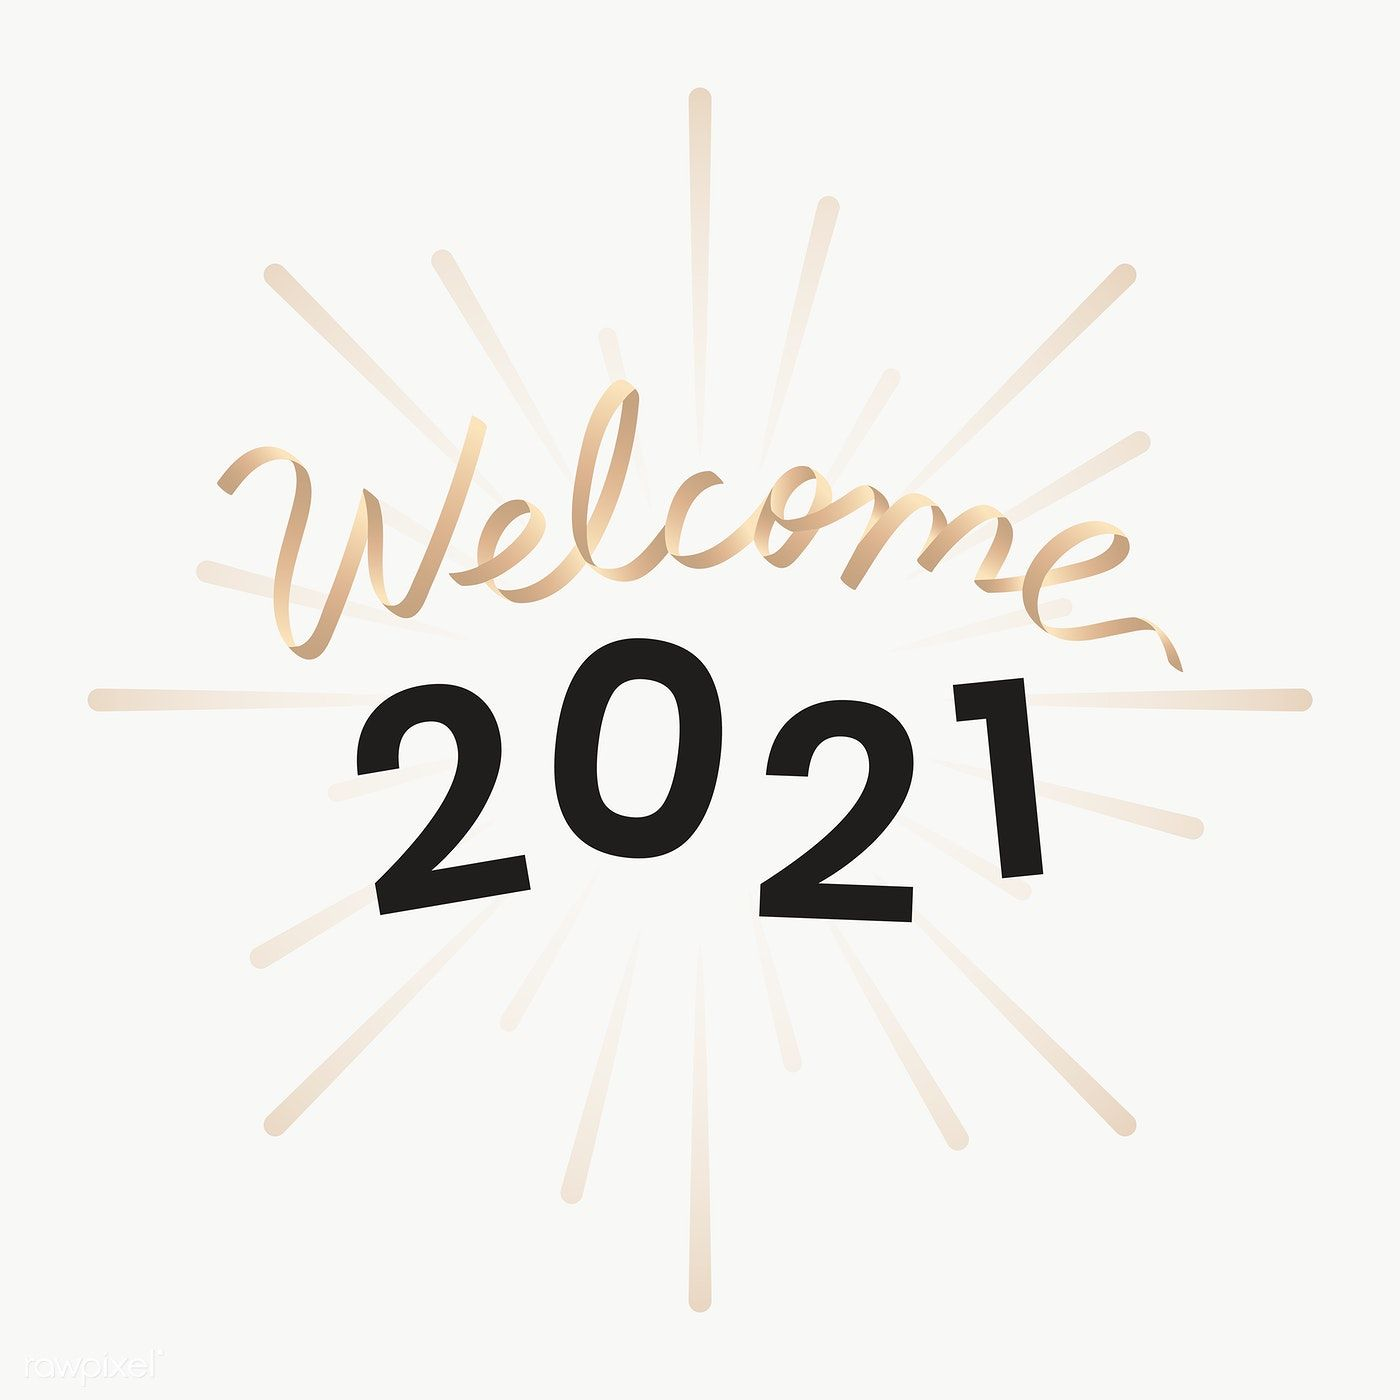 golden welcome 2021 transparent png free image by rawpixel com ningzk v stock images free image fun new month wishes golden welcome 2021 transparent png